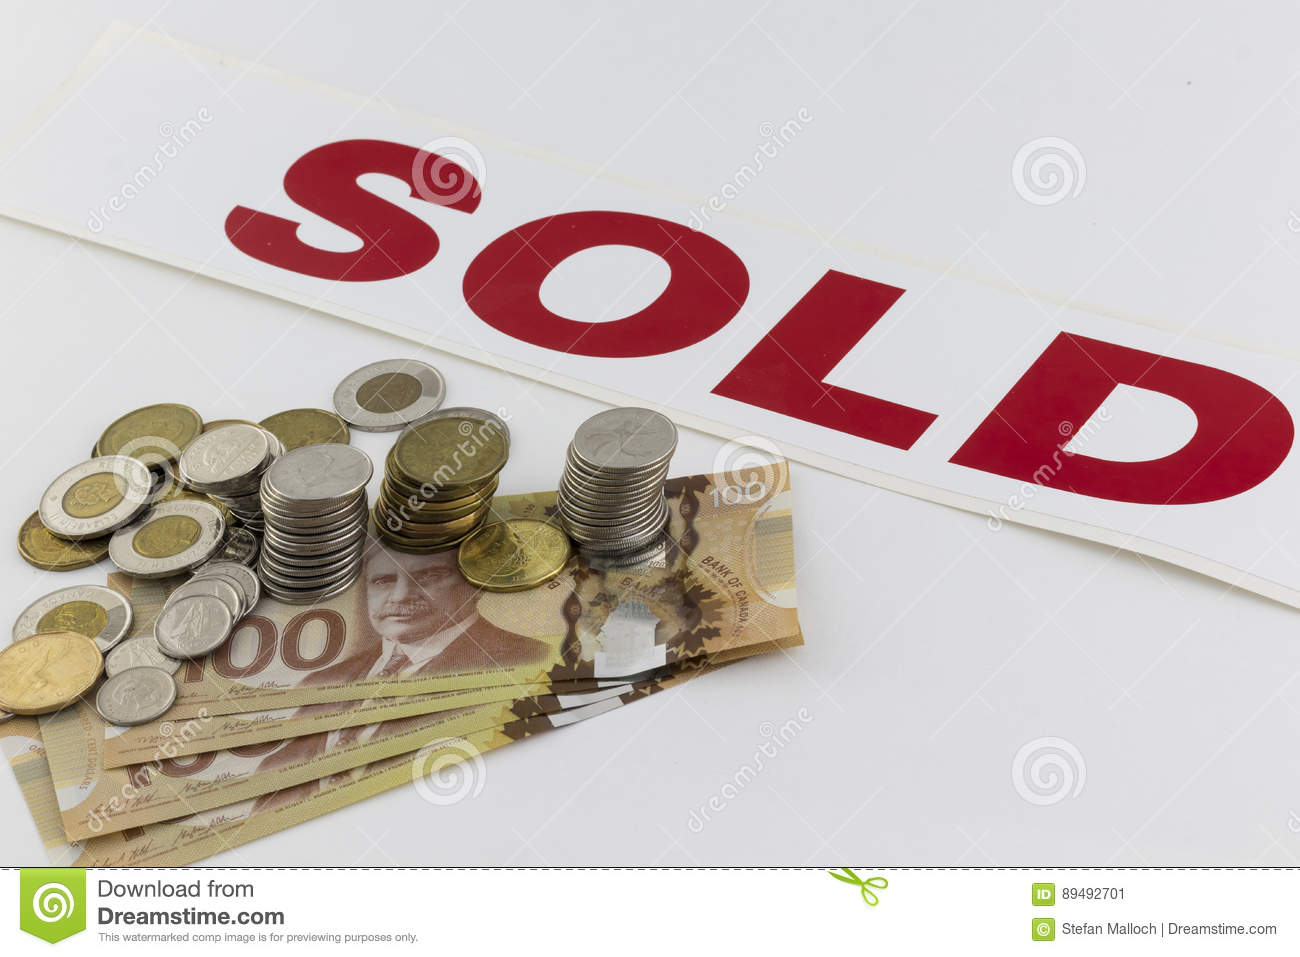 Pile of Canadian money with sold sign